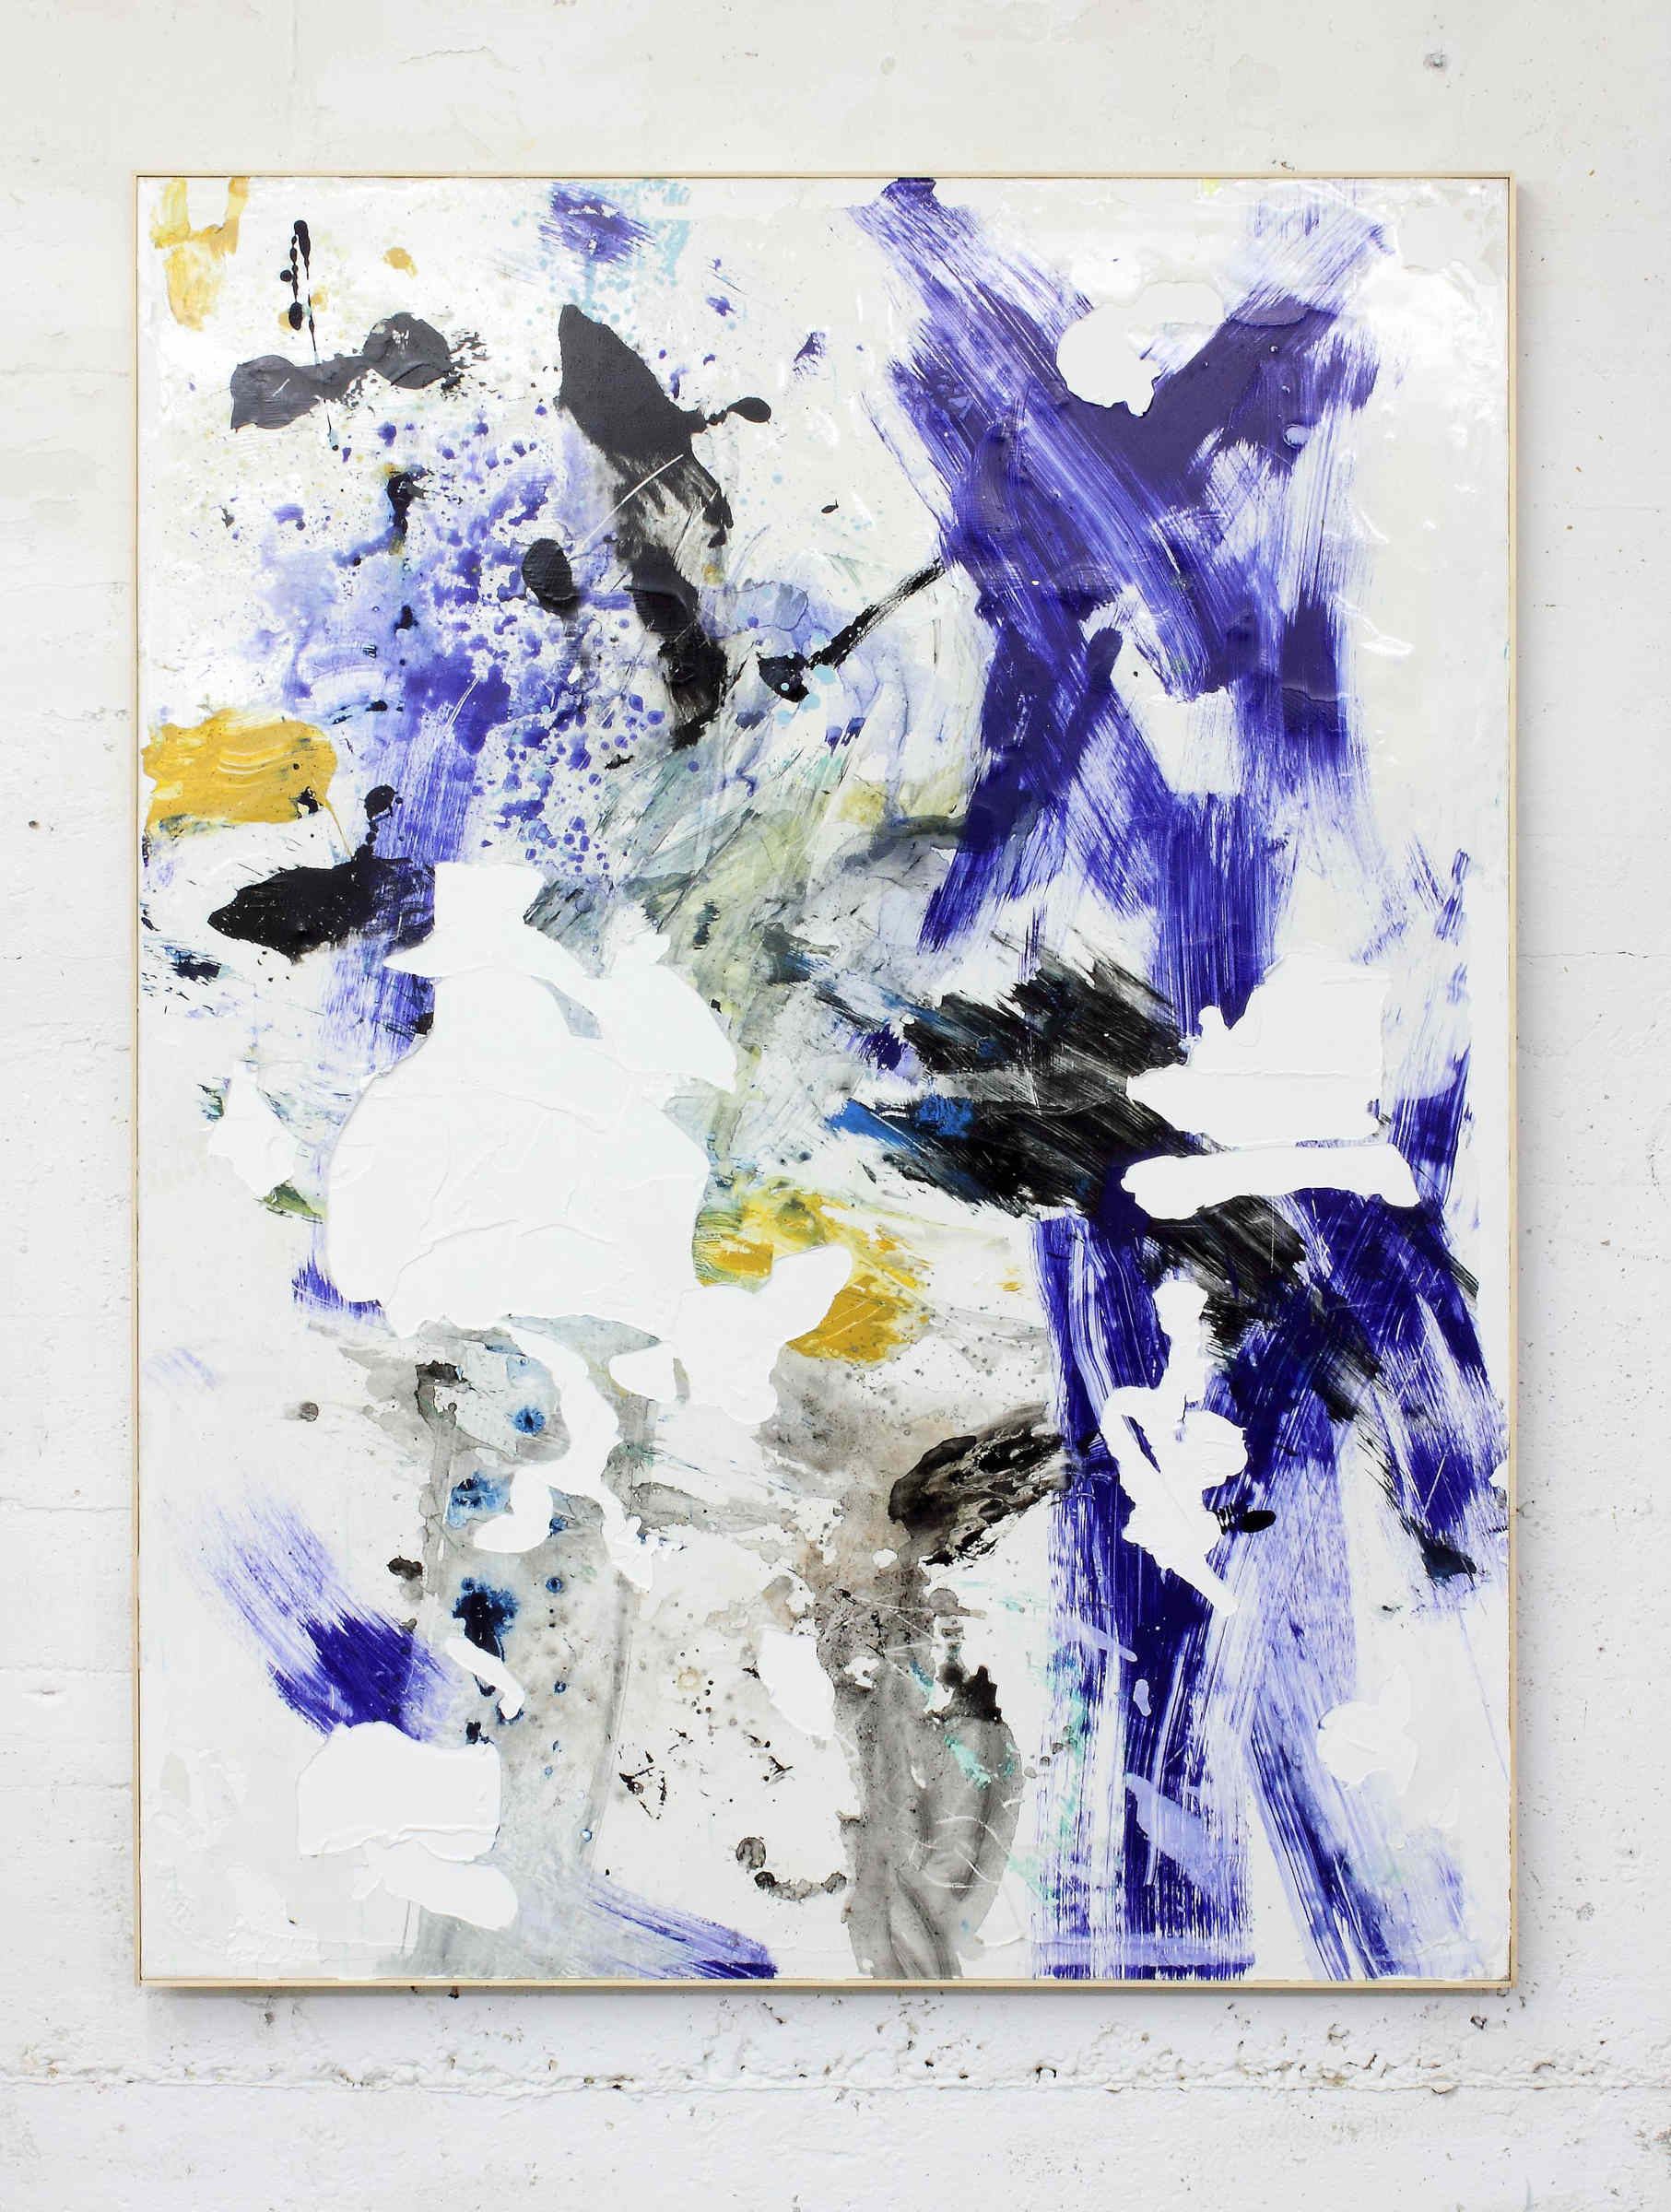 29_Fanta, 2015, acrylic paint, acrylic sediments, dirt from the studio, and acrylic emulsion on canvas, artist frame, cm 161x121